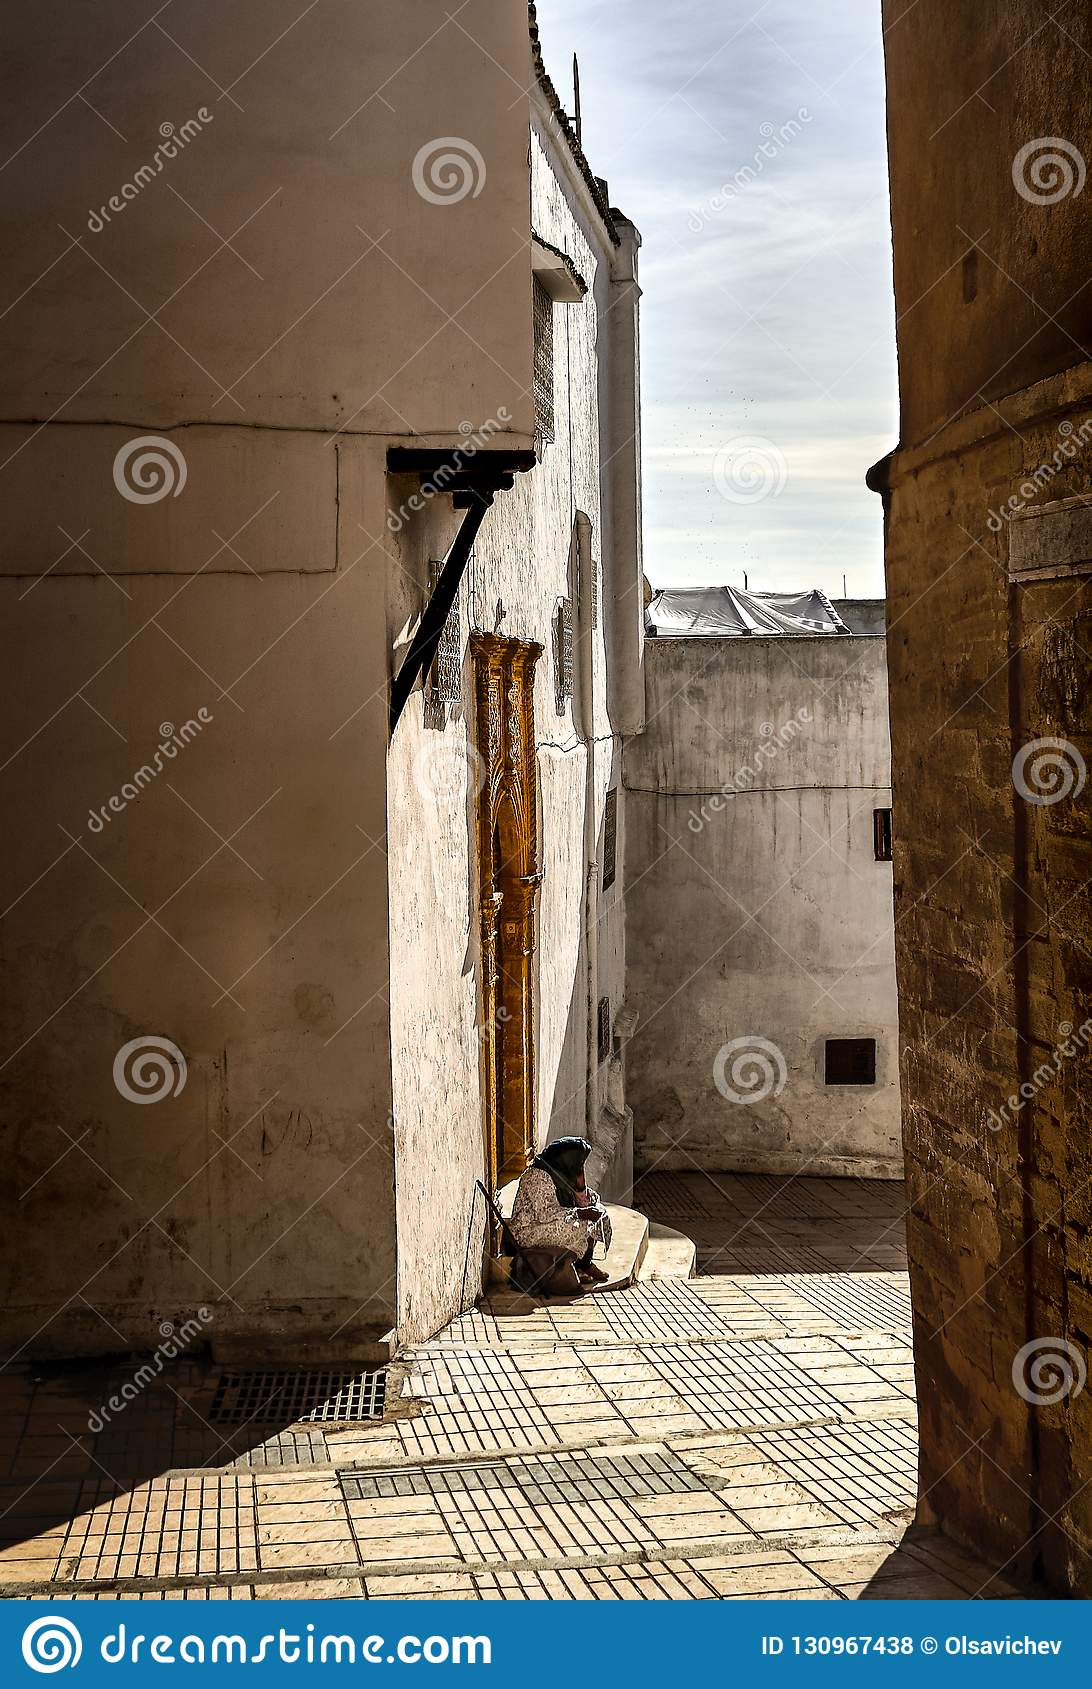 Light and shadow Sale. A street in the old city of Sale under the rays of the midday spring sun in front of a golden door